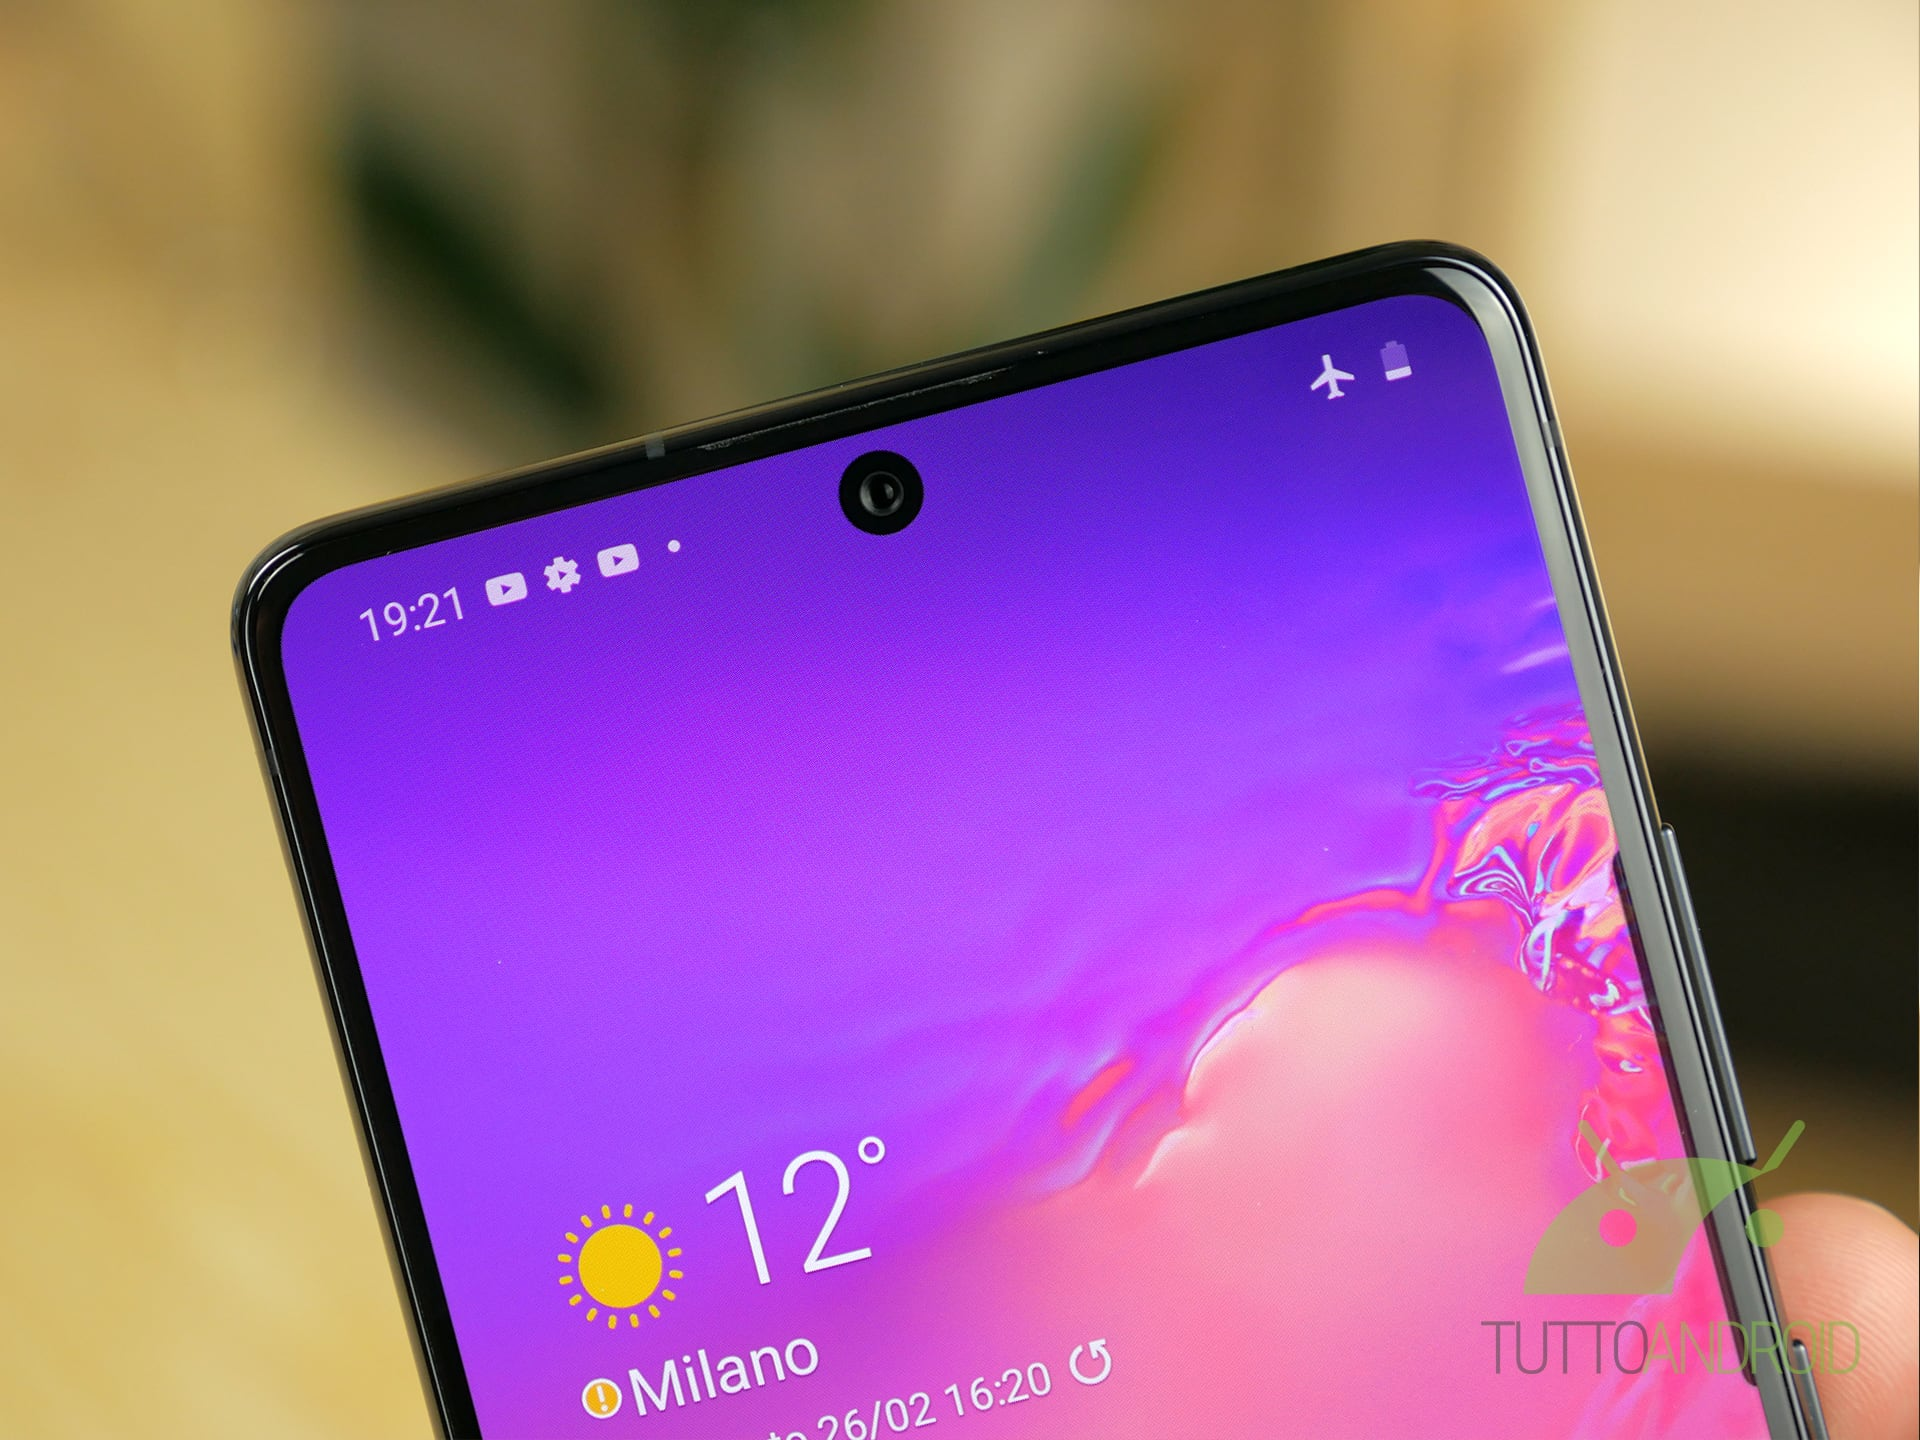 Samsung Galaxy S10 Lite Infinity-O display